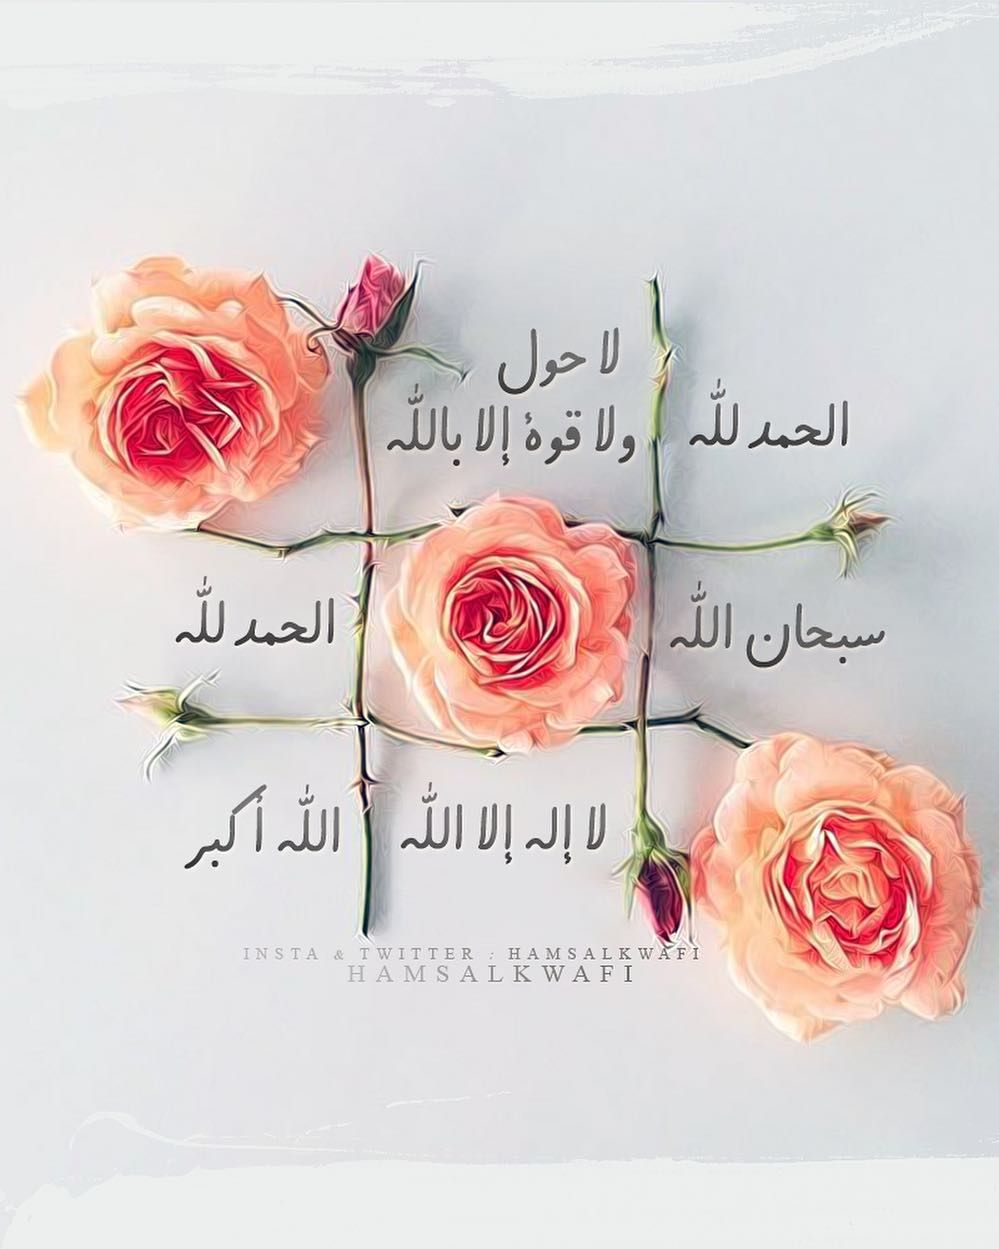 829 Likes 68 Comments كہ ن ذا أثہ ـر Hamsalkwafi On Instagram الباقيات ا Islamic Quotes Wallpaper Islamic Quotes Quran Islamic Love Quotes